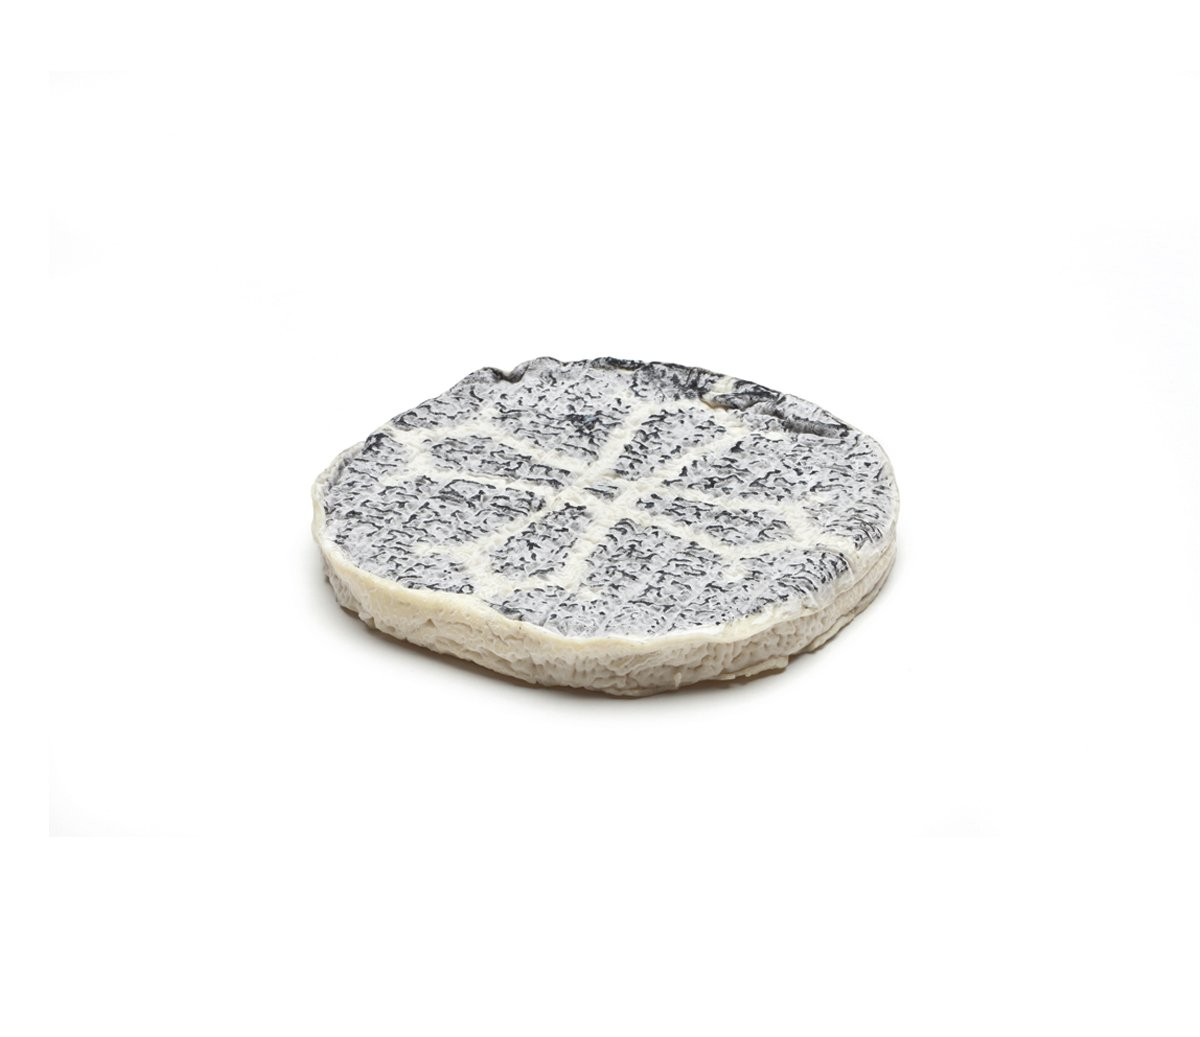 Catal de chevre